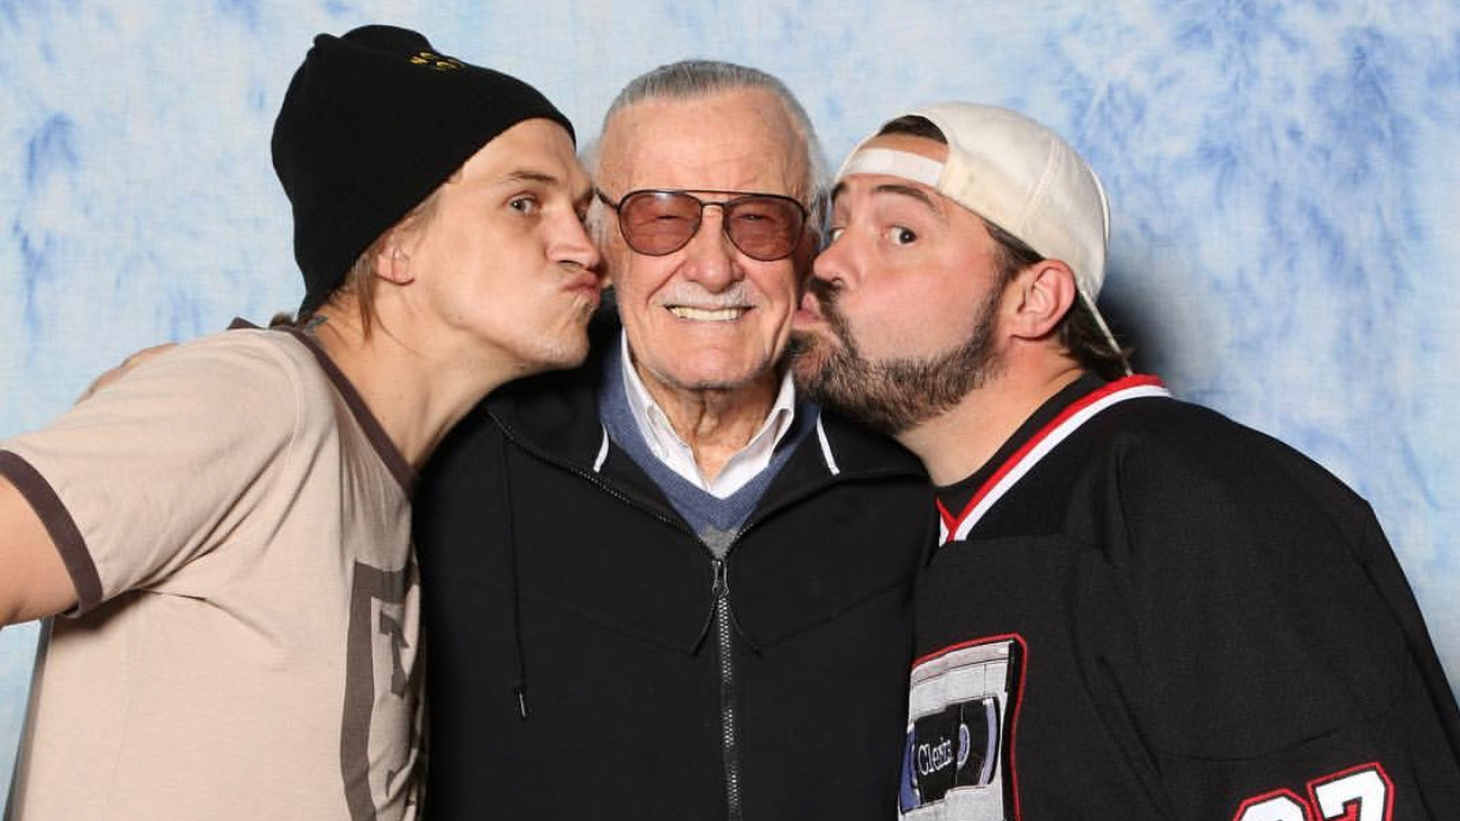 Jason Mewes, Stan Lee and Kevin Smith.